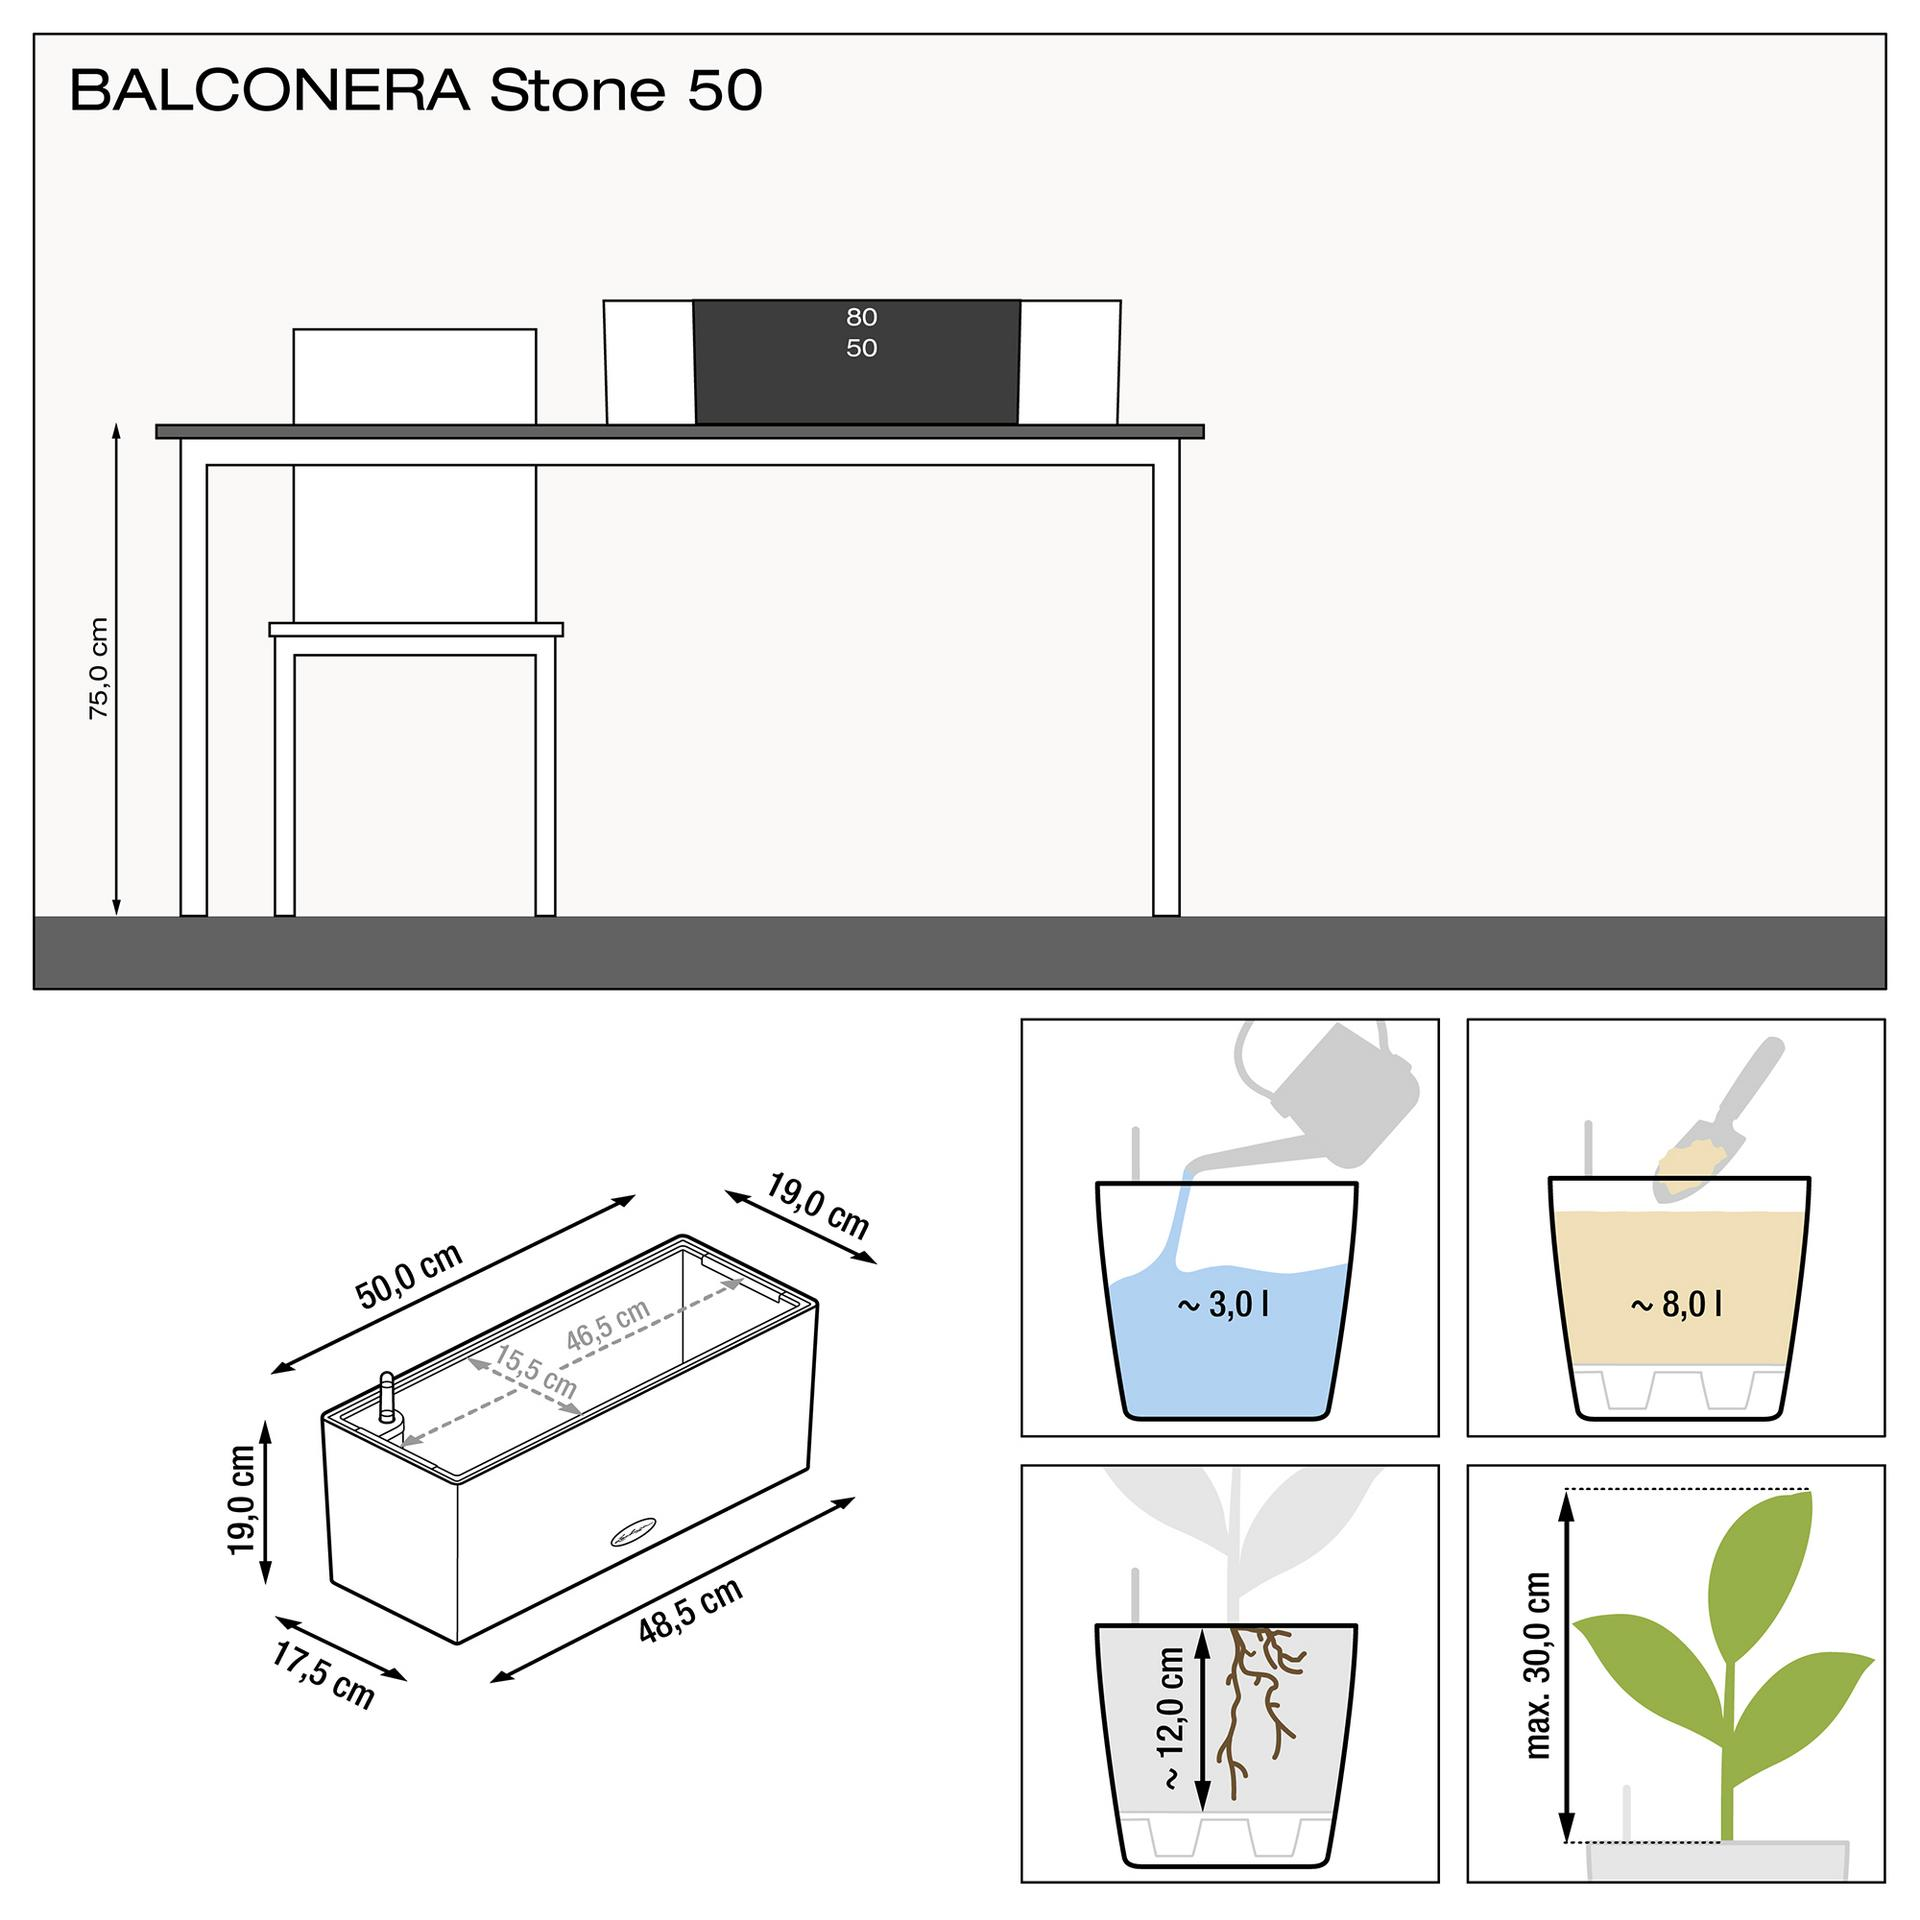 le_balconera-stone50_product_addi_nz